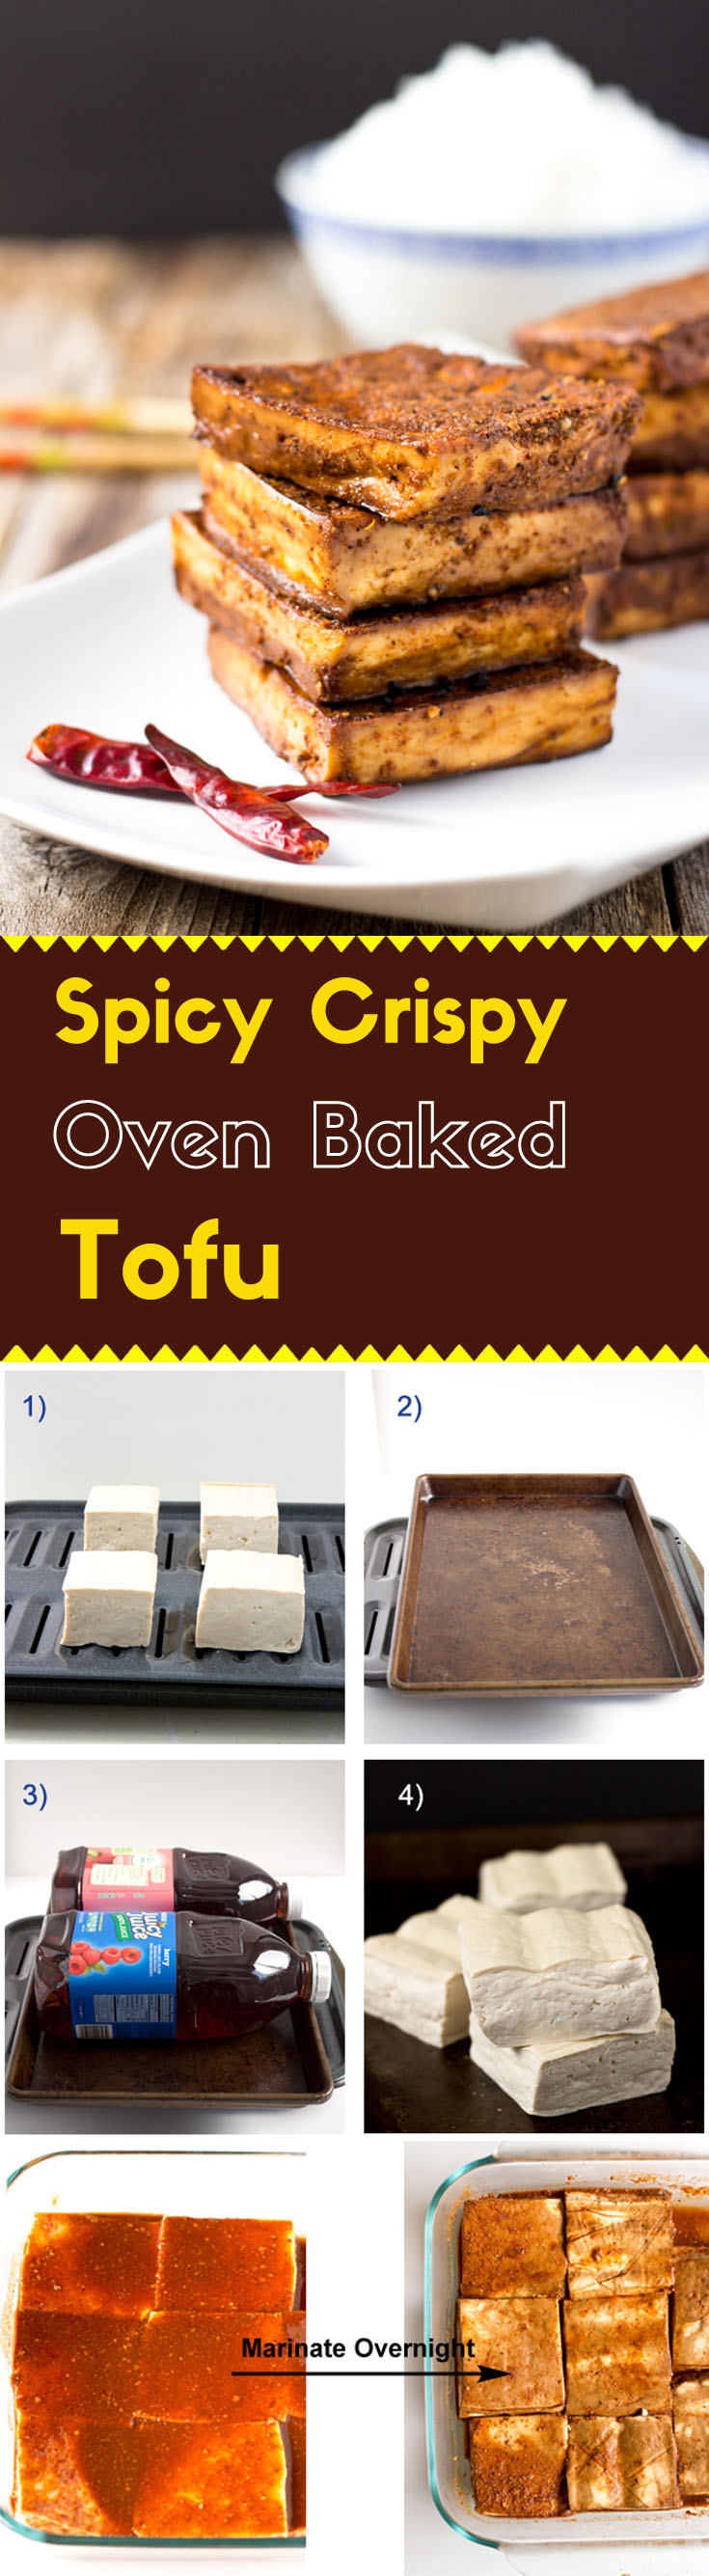 These oven baked tofu blocks are perfectly seasoned with Sichuan style spices and have a fantastic tender chewy texture.